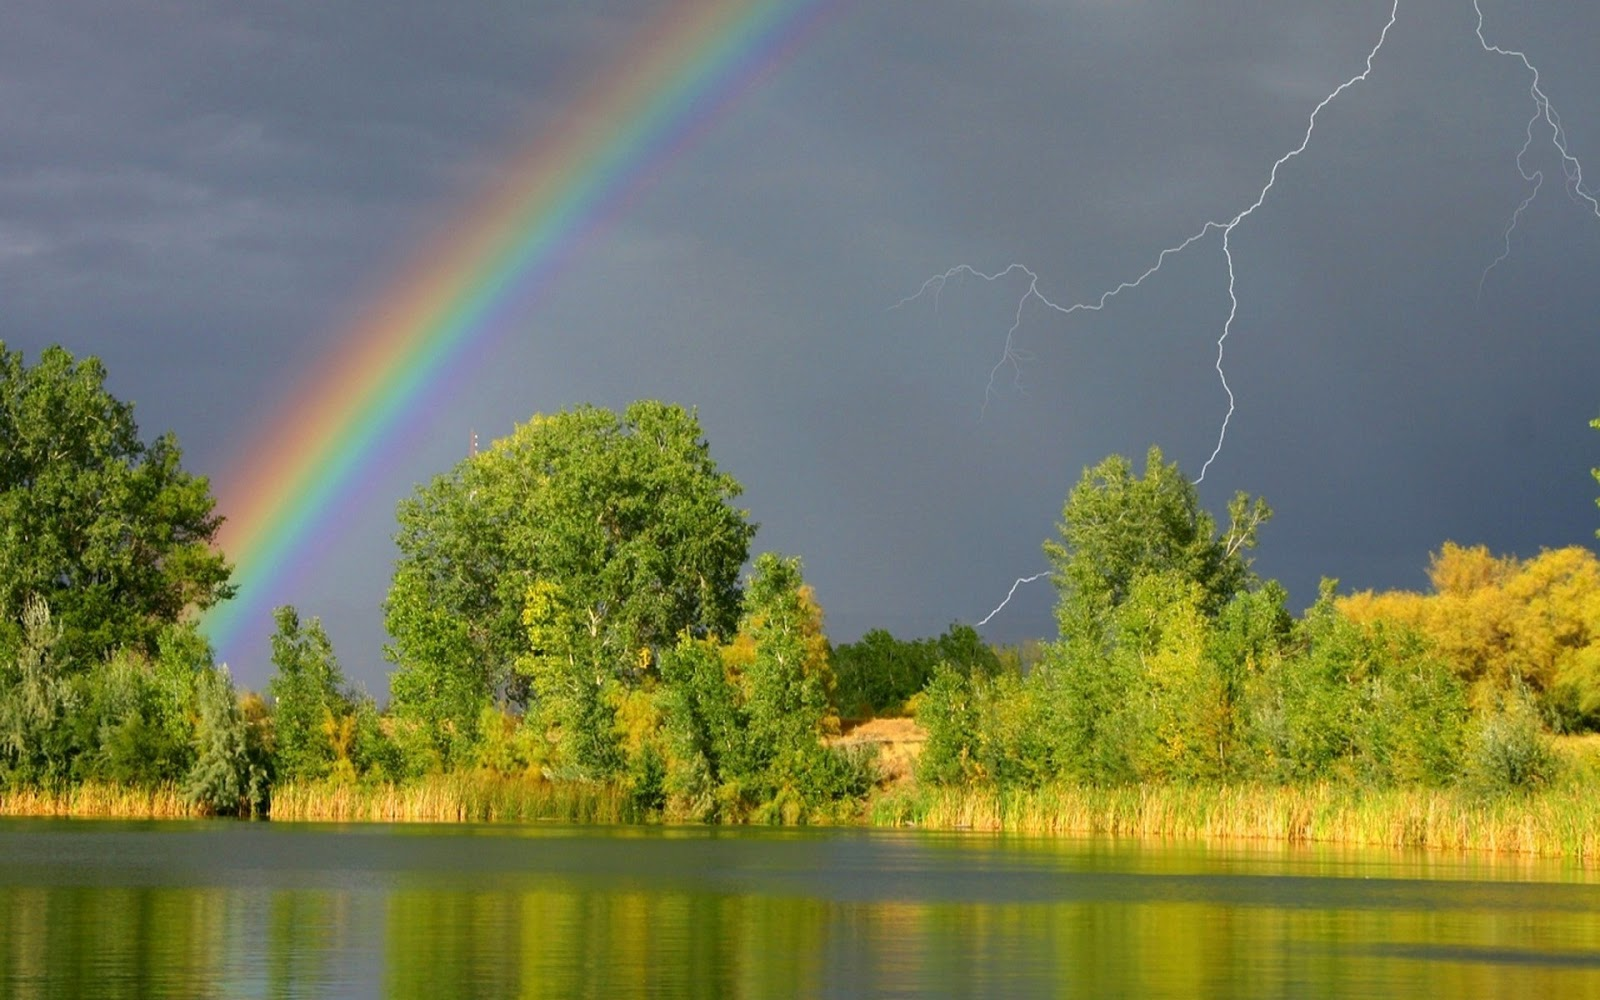 Free Church Flood Cliparts, Download Free Clip Art, Free ... |Real Rainbows In The Sky On A Sunny Day